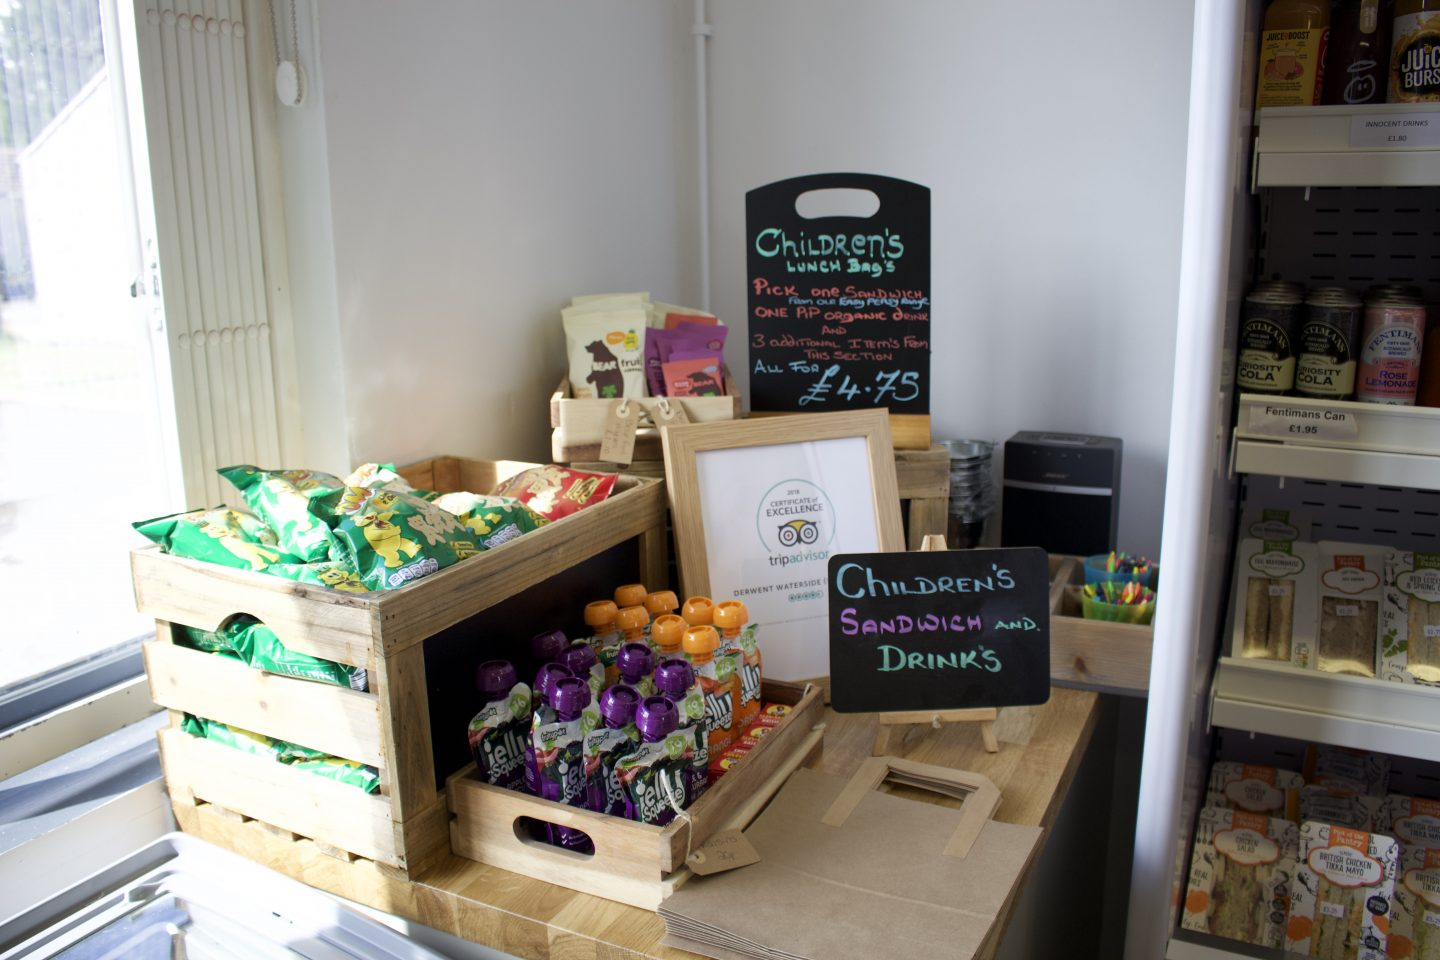 Children's food options in the cafe including jelly pouches, pom bear crisps, fruit roll ups - lunch bags priced £4.75